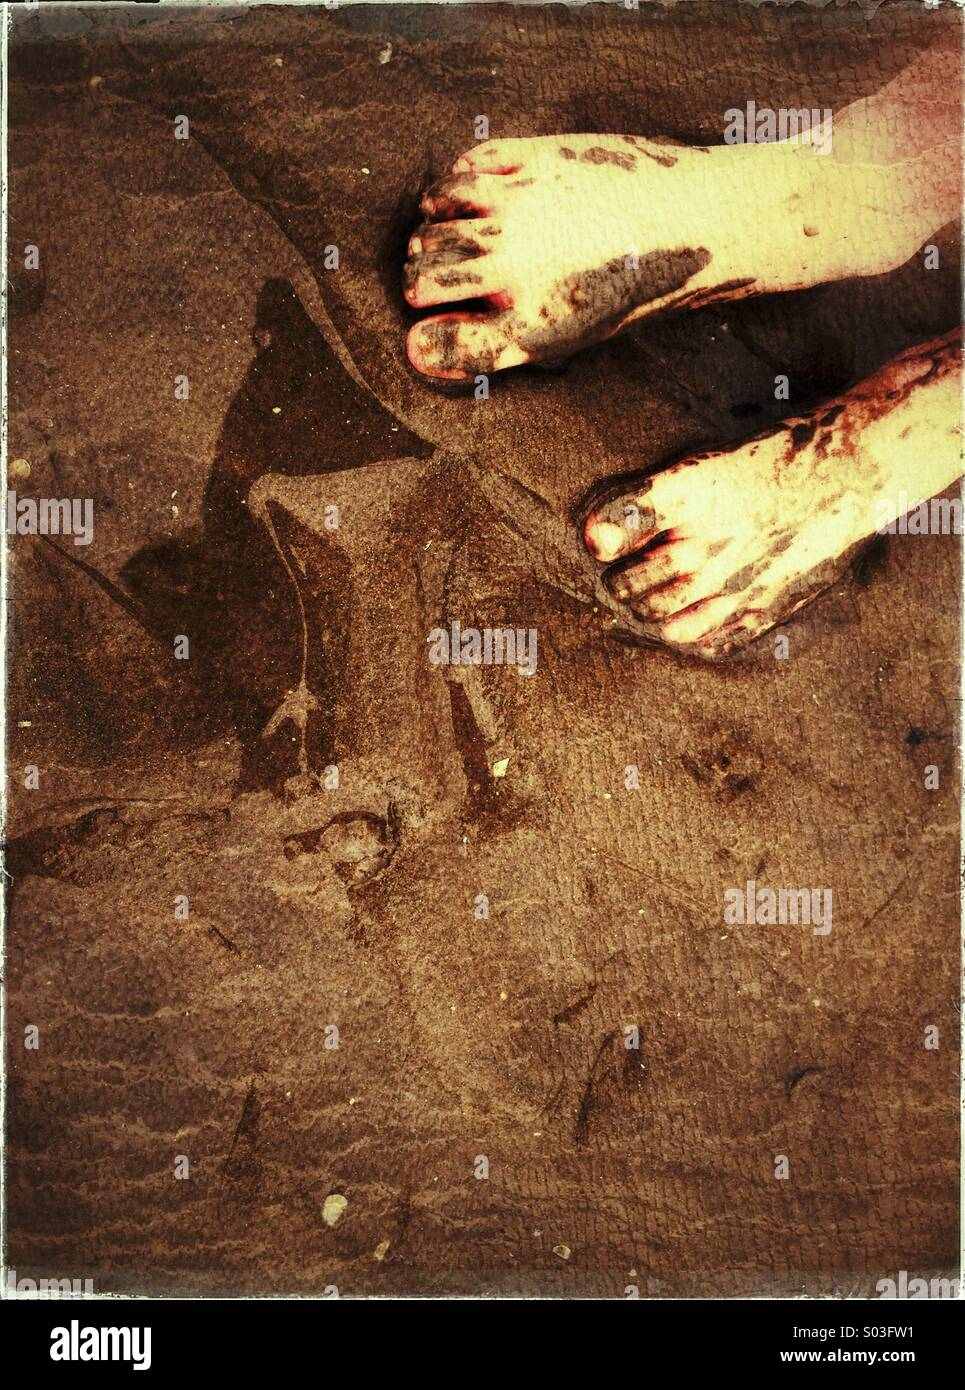 Child's muddy feet in wet sand - Stock Image